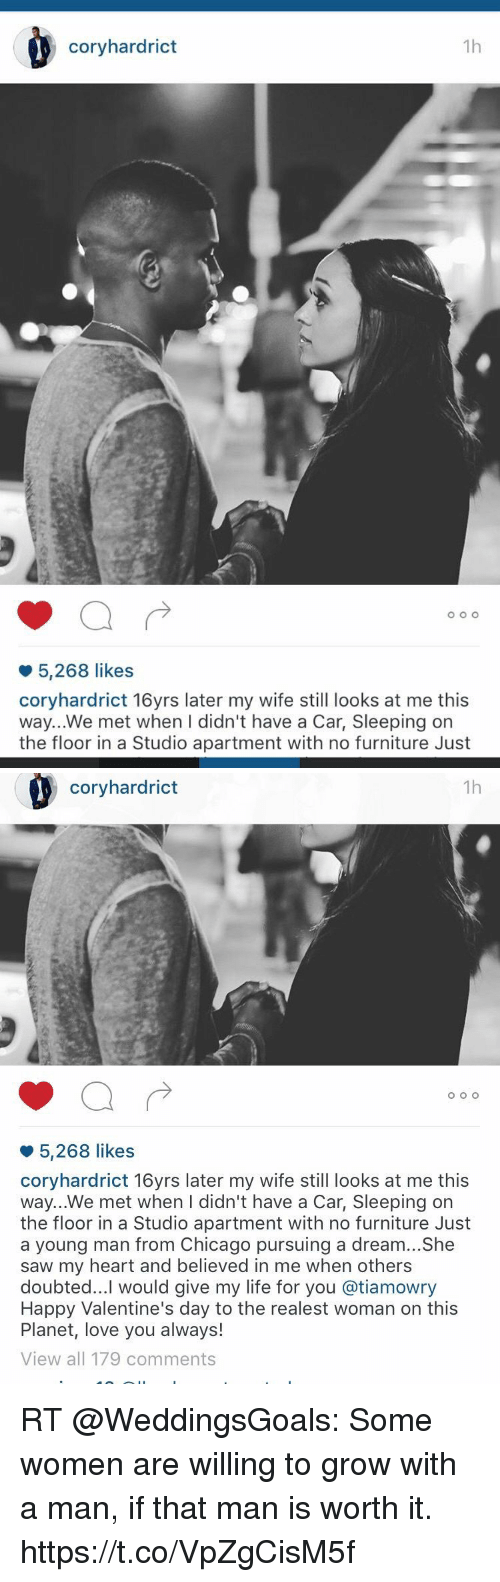 A Dream, Chicago, and Life: coryhardrict  1h  5,268 likes  coryhardrict 16yrs later my wife still looks at me this  way...We met when I didn't have a Car, Sleeping on  the floor in a Studio apartment with no furniture Just   coryhardrict  1h  o O O  5,268 likes  coryhardrict 16yrs later my wife still looks at me this  way...We met when I didn't have a Car, Sleeping orn  the floor in a Studio apartment with no furniture Just  a young man from Chicago pursuing a dream...She  saw my heart and believed in me when others  doubted...I would give my life for you @tiamowry  Happy Valentine's day to the realest woman on this  Planet, love you always!  View all 179 comments RT @WeddingsGoals: Some women are willing to grow with a man, if that man is worth it. https://t.co/VpZgCisM5f